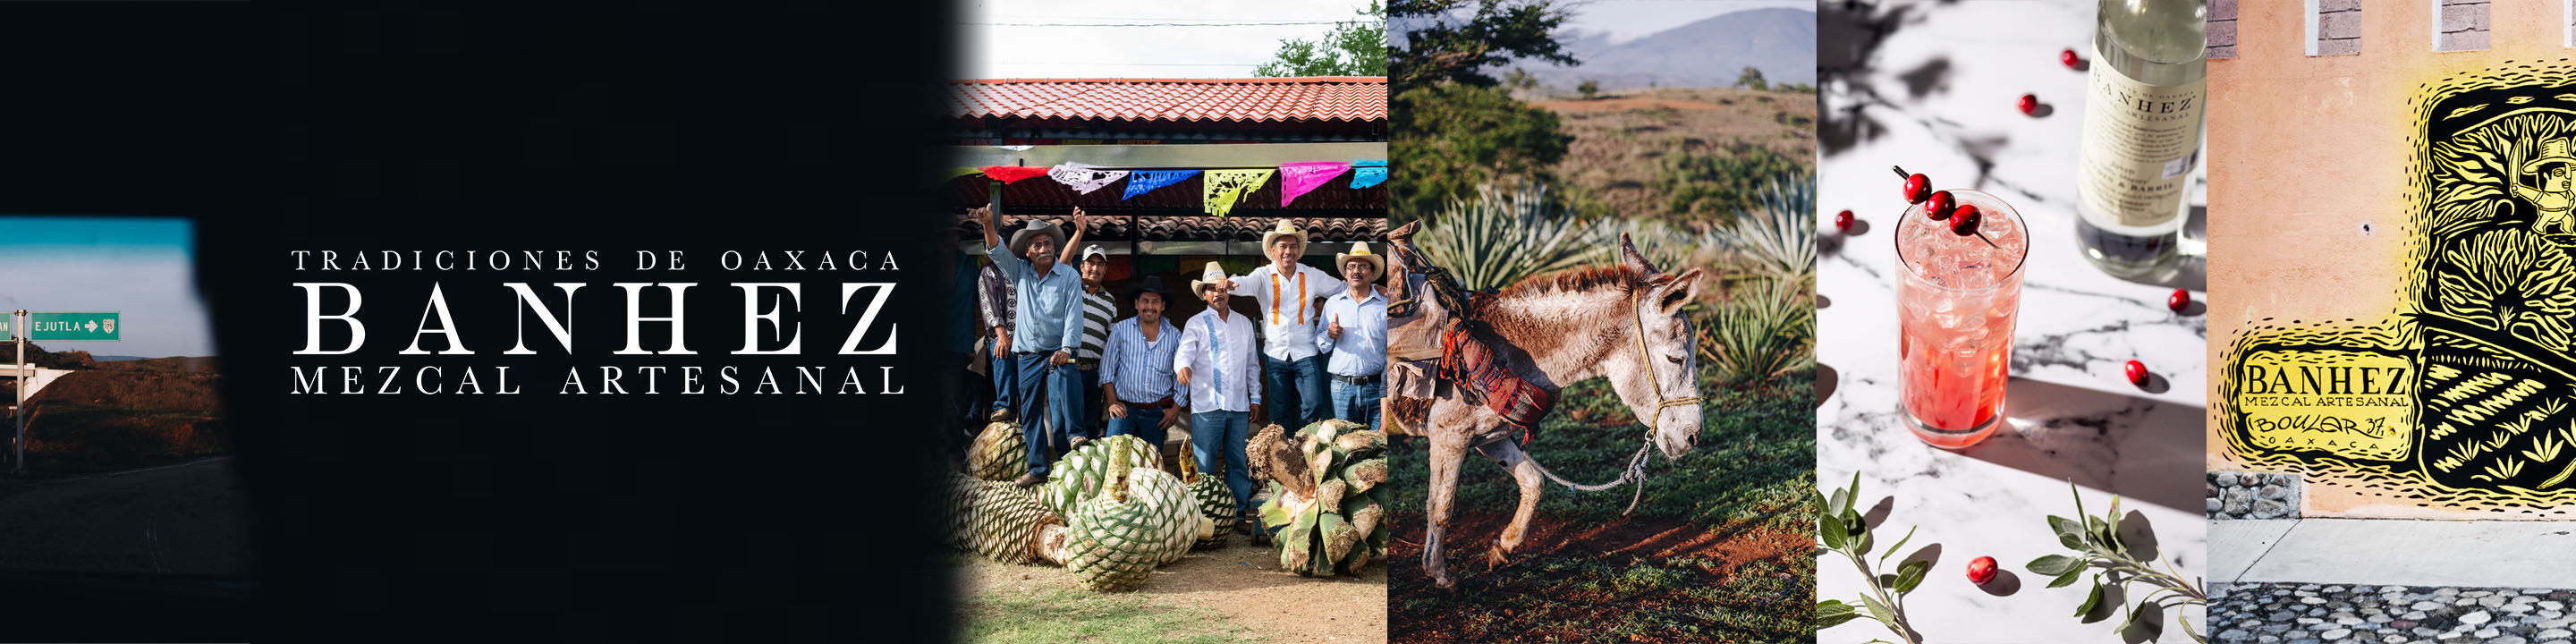 In the village of San Miguel Ejutla in the central valley of Oaxaca, a growing Co-operative of over 36 families produces Banhez Mezcal. The farming families and mezcaleros work as one to make sustainable, fair trade mezcal as their ancestors have done for generations.